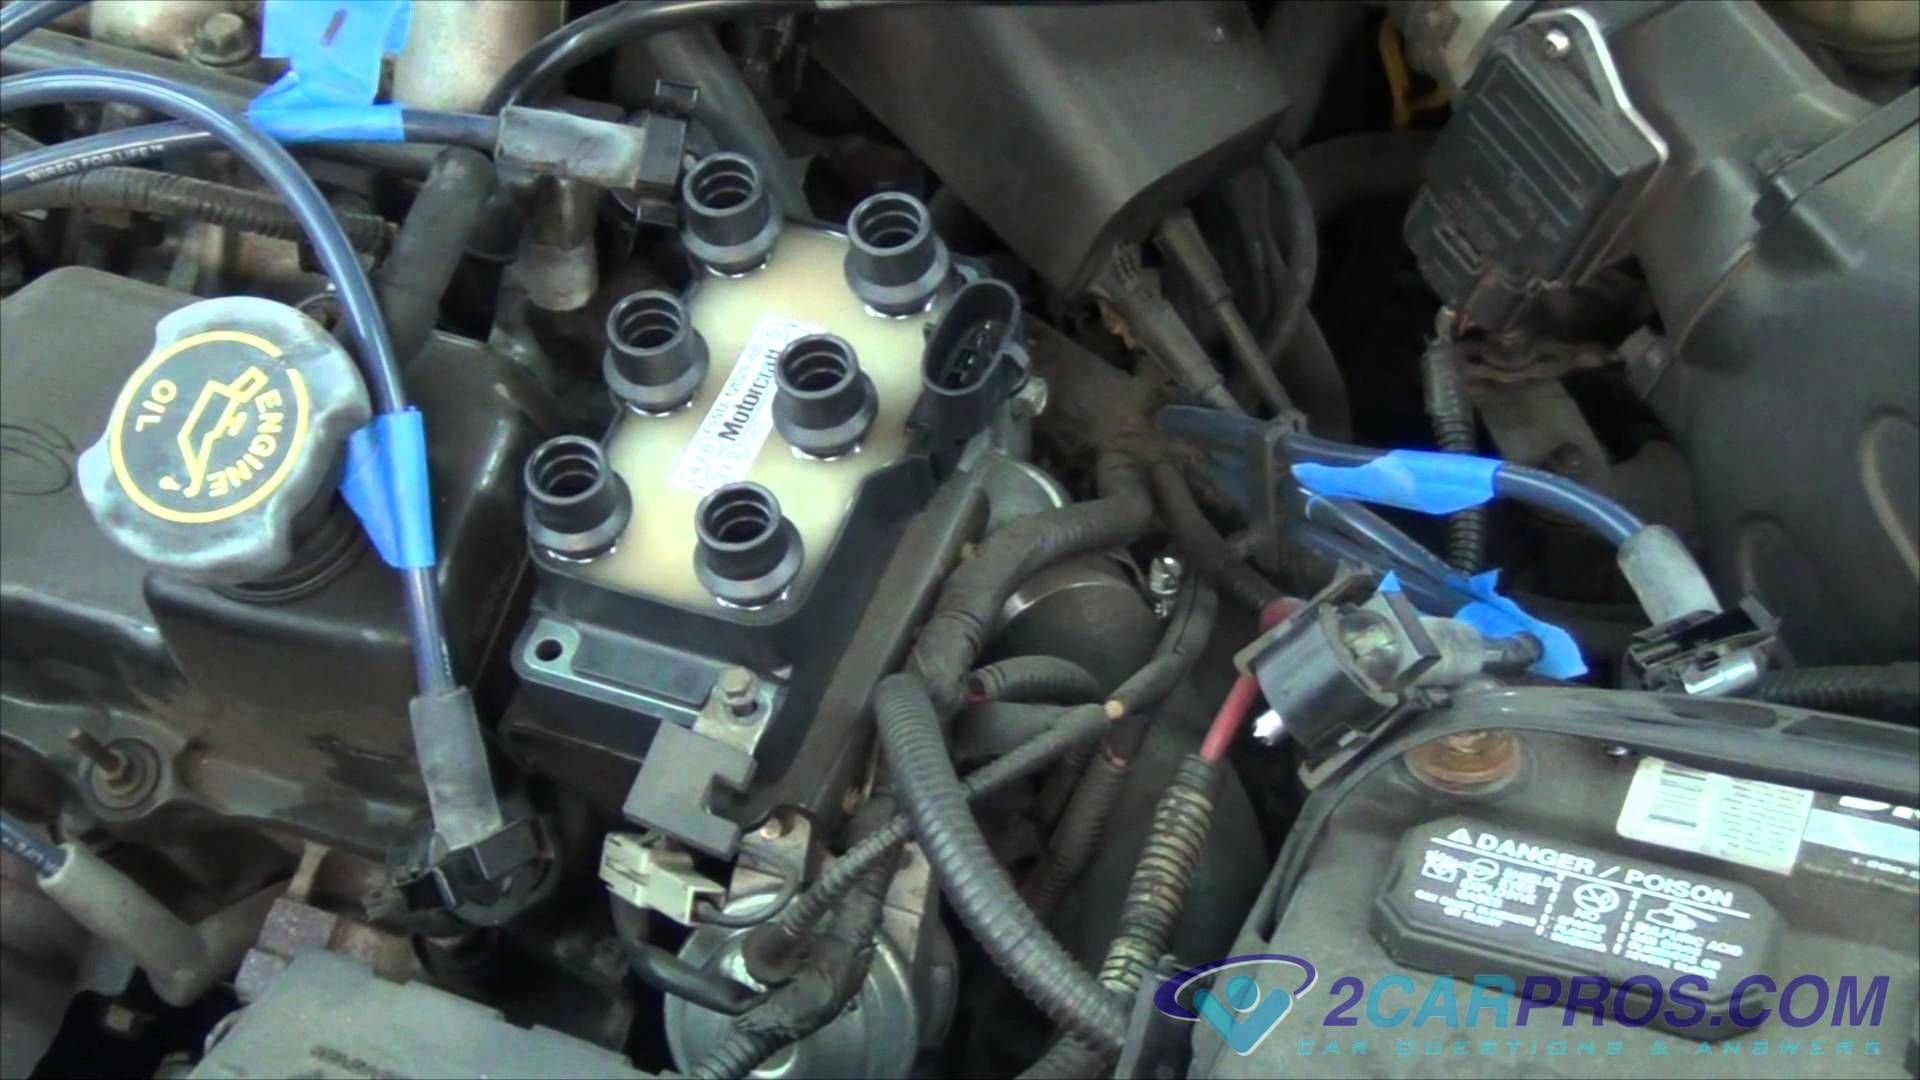 How to install replace power window regulator ford explorer sport trac mountaineer 91 05 1aauto com http www thehowto info how to install repla